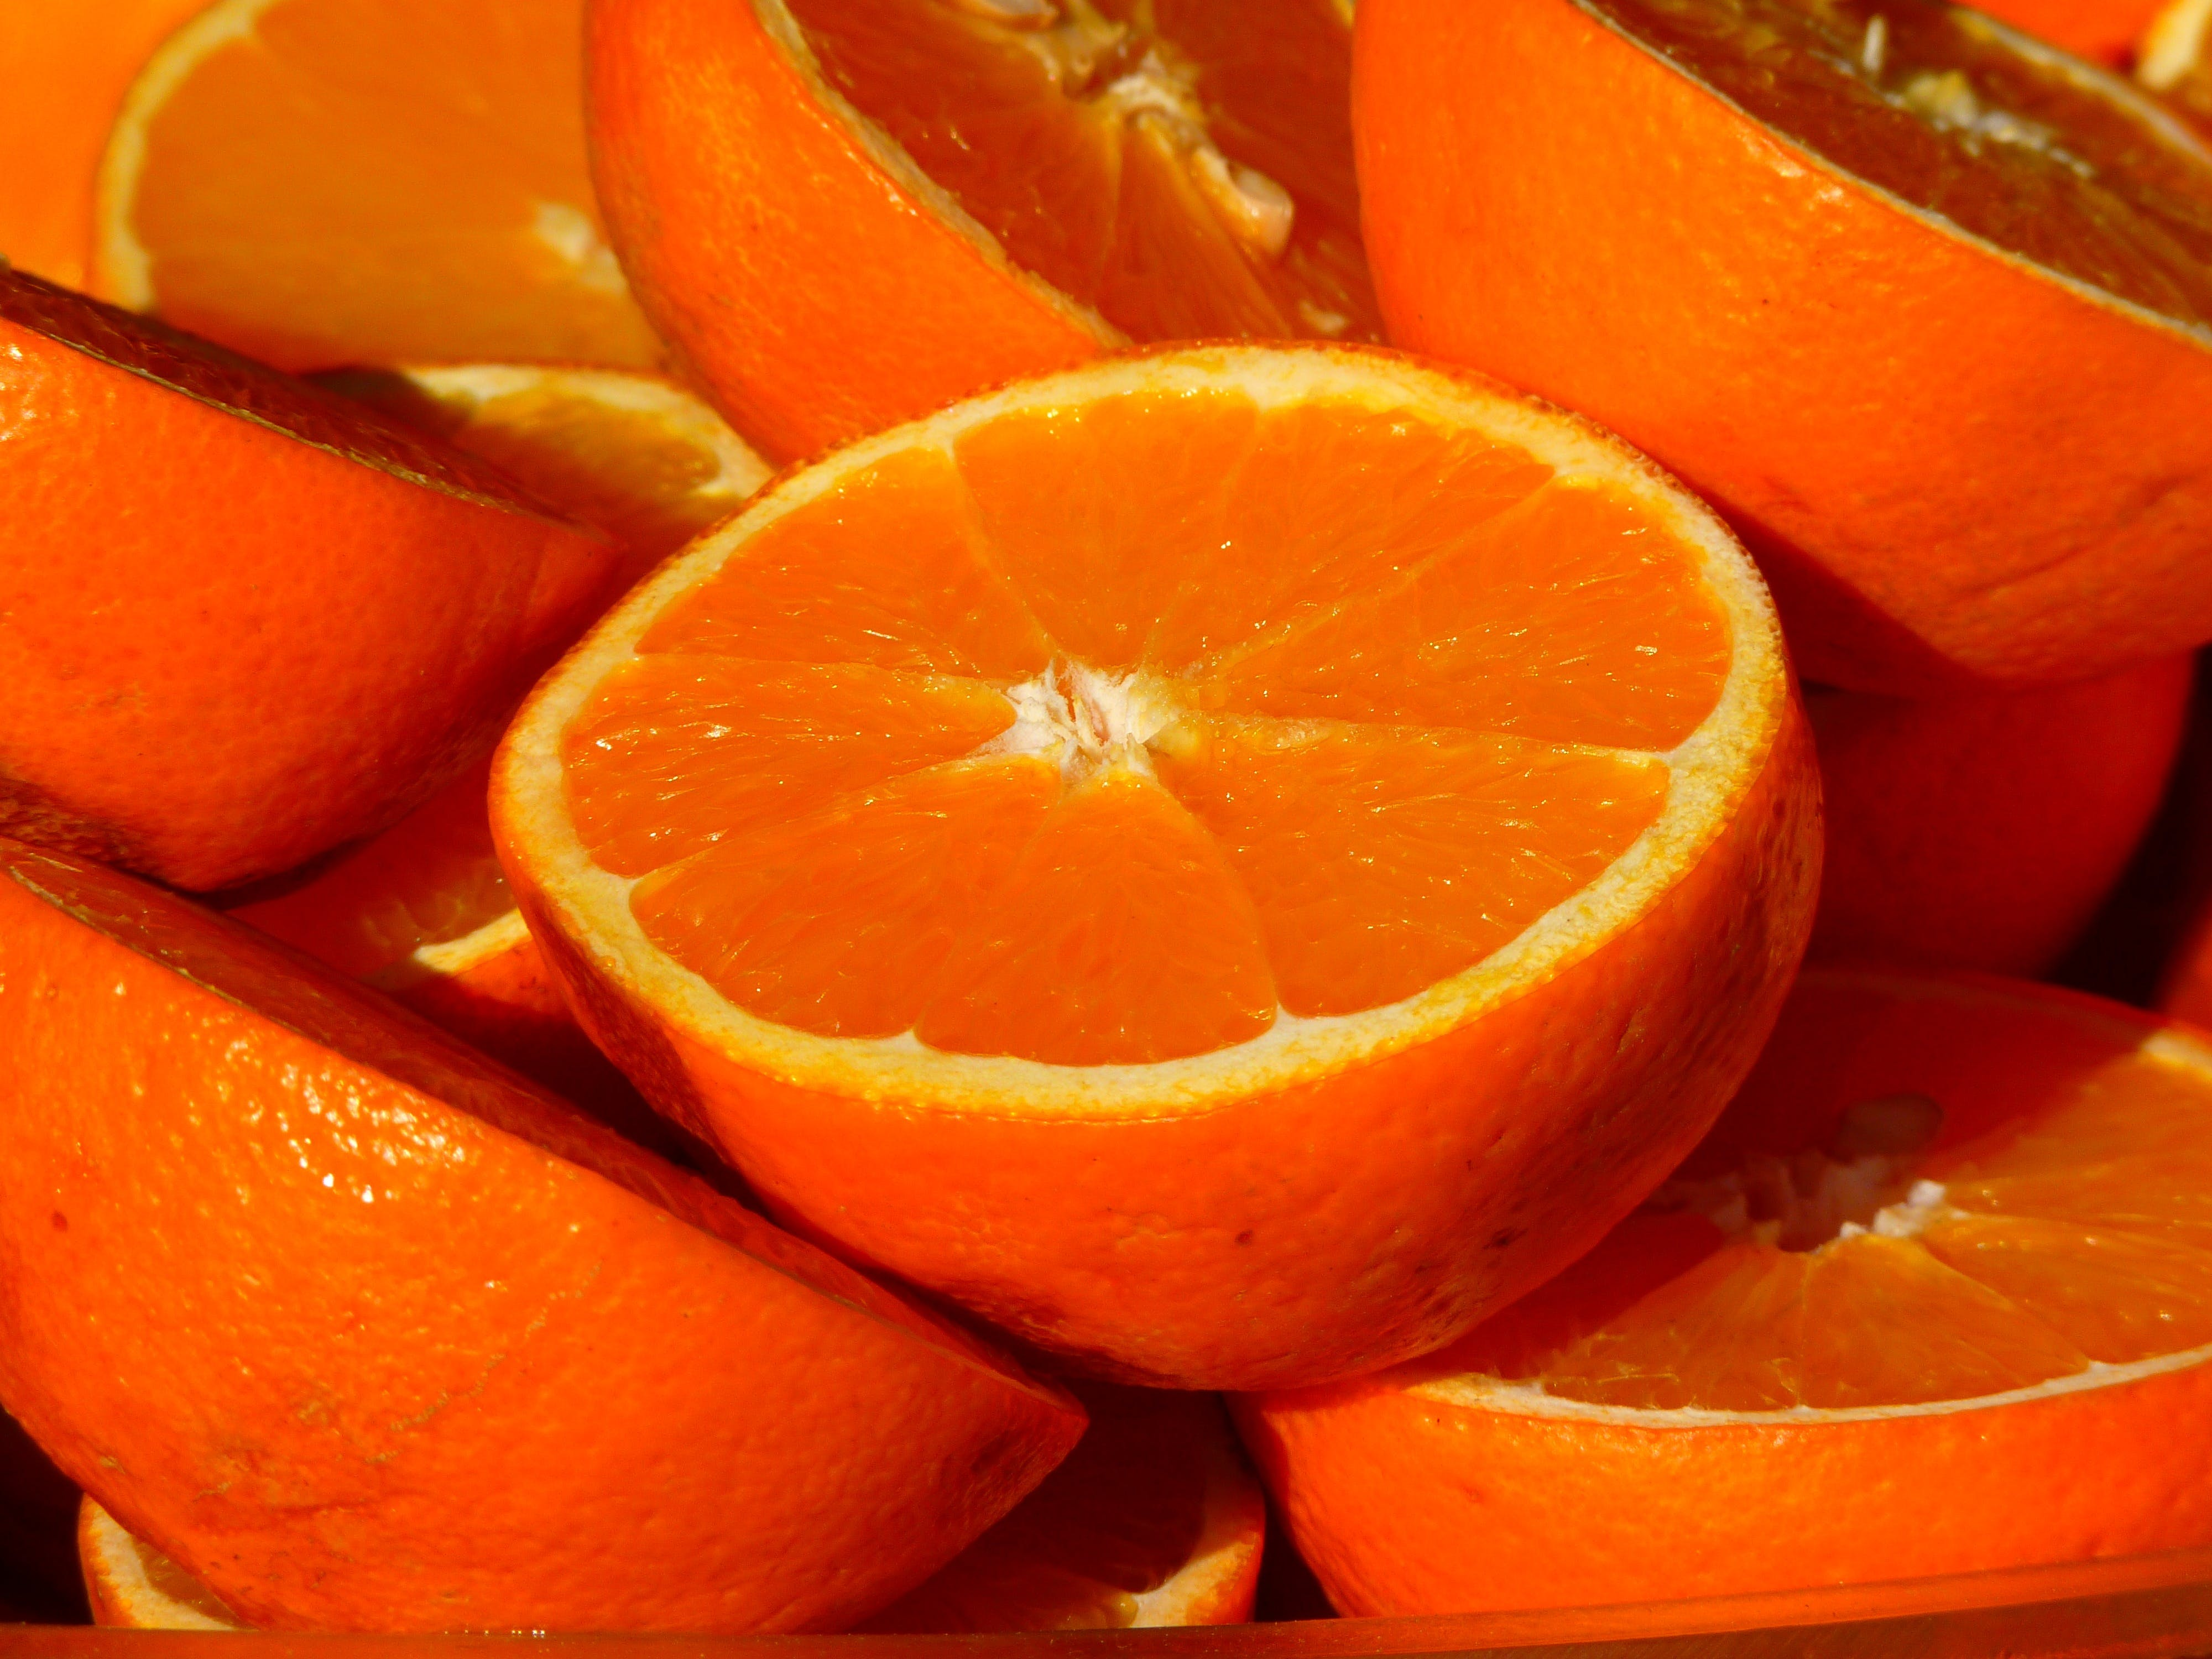 Sliced Orange Fruits